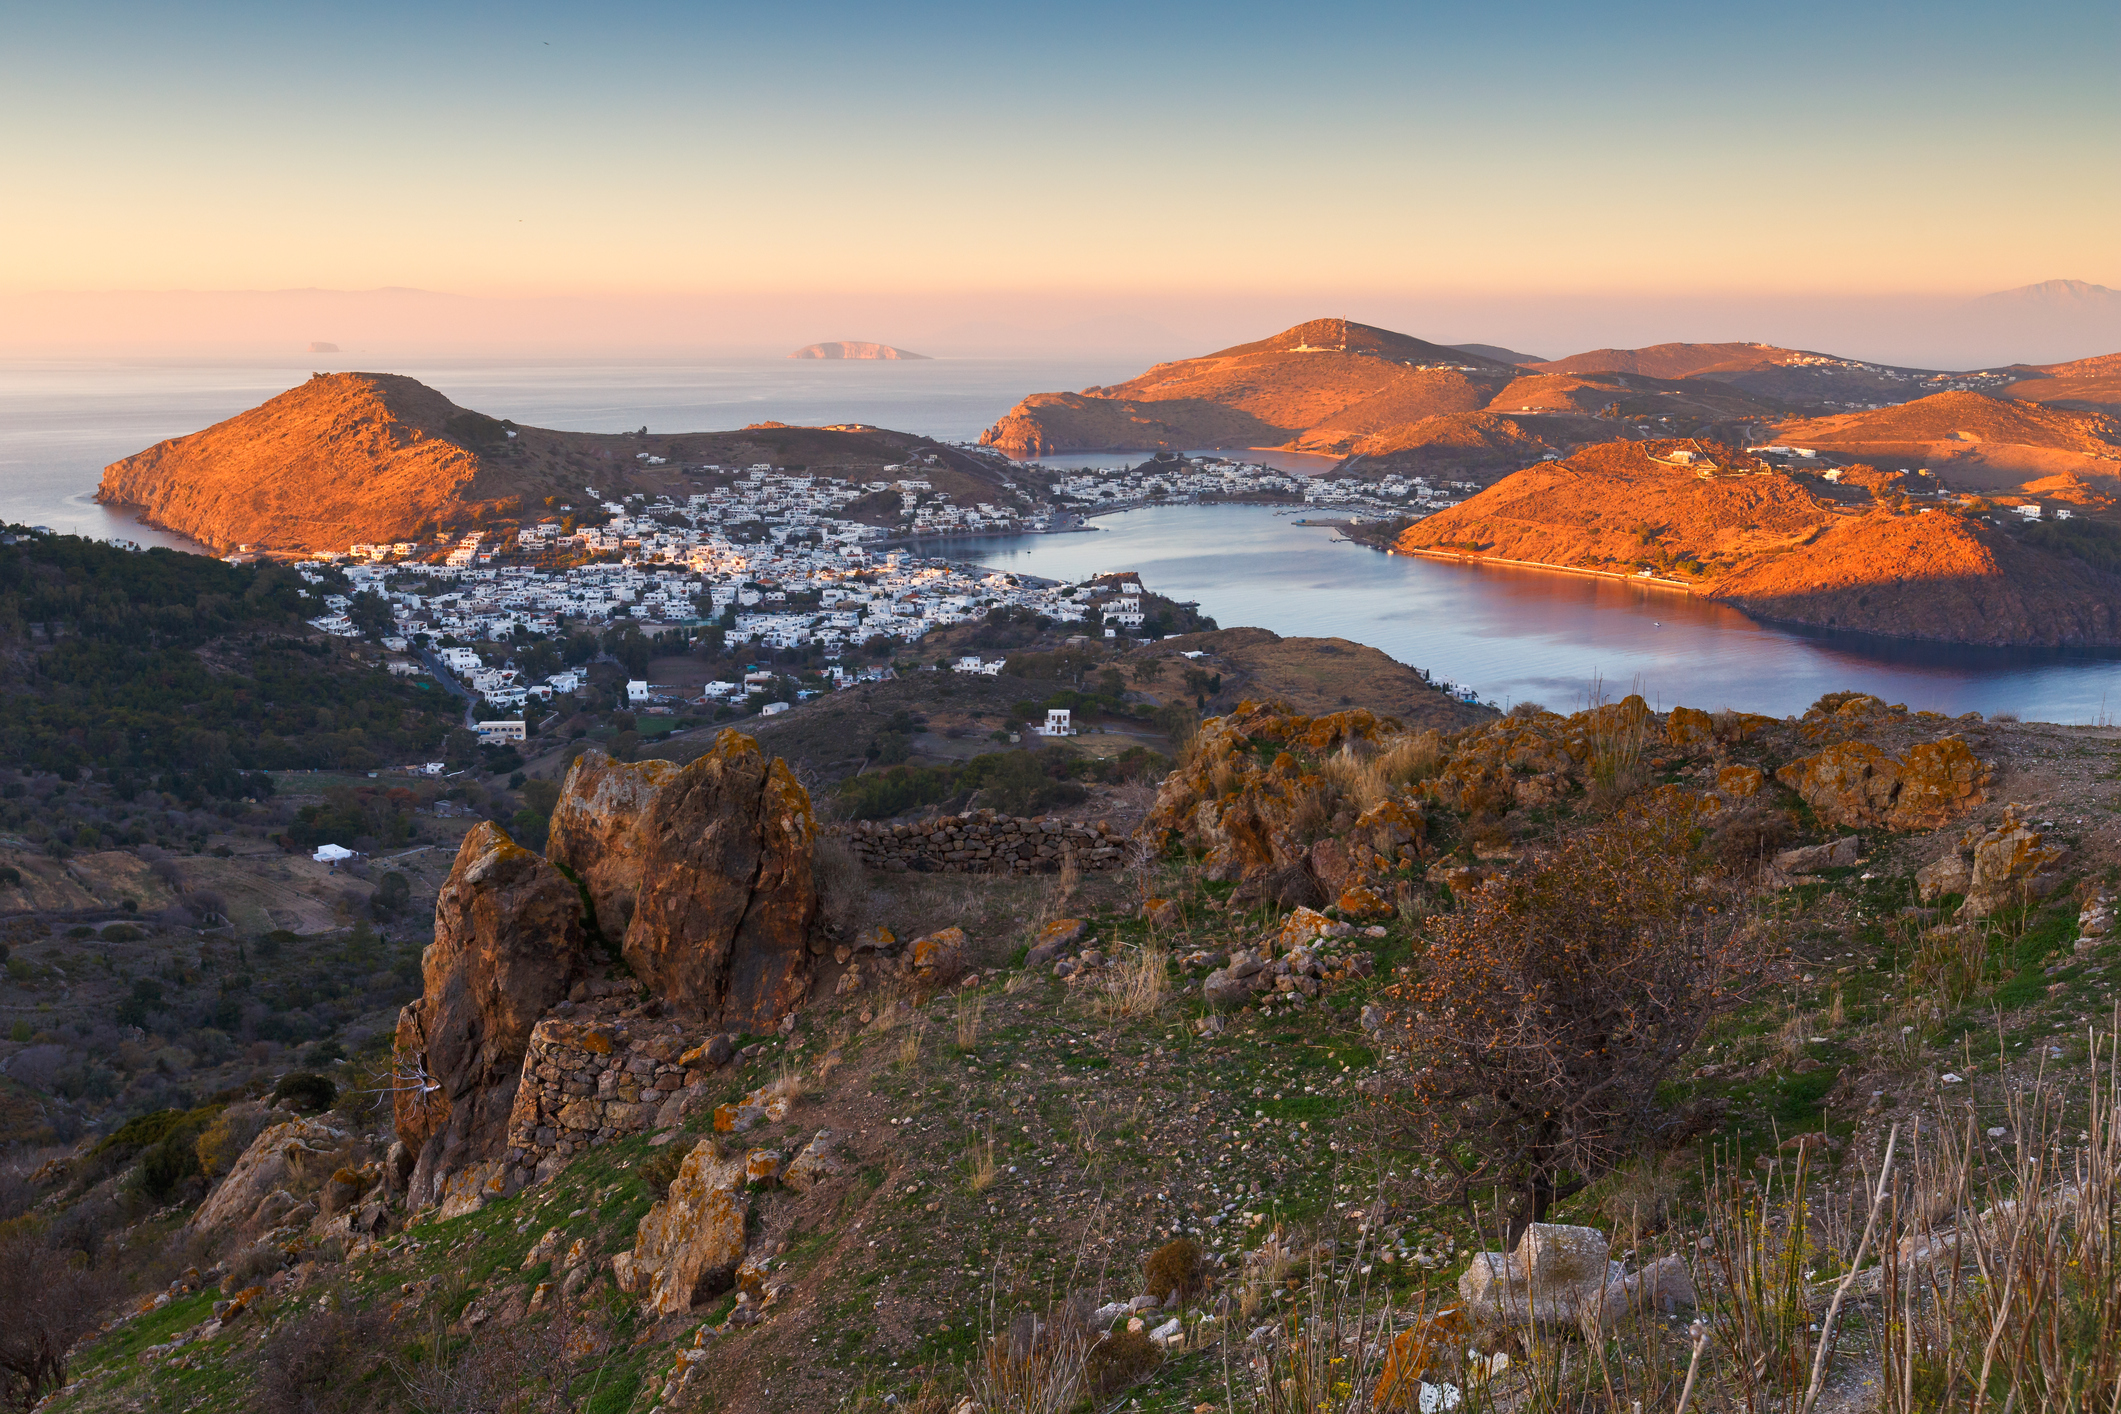 Patmos island in Dodecanse archipelago in eastern Aegean (Thinkstock/PA)